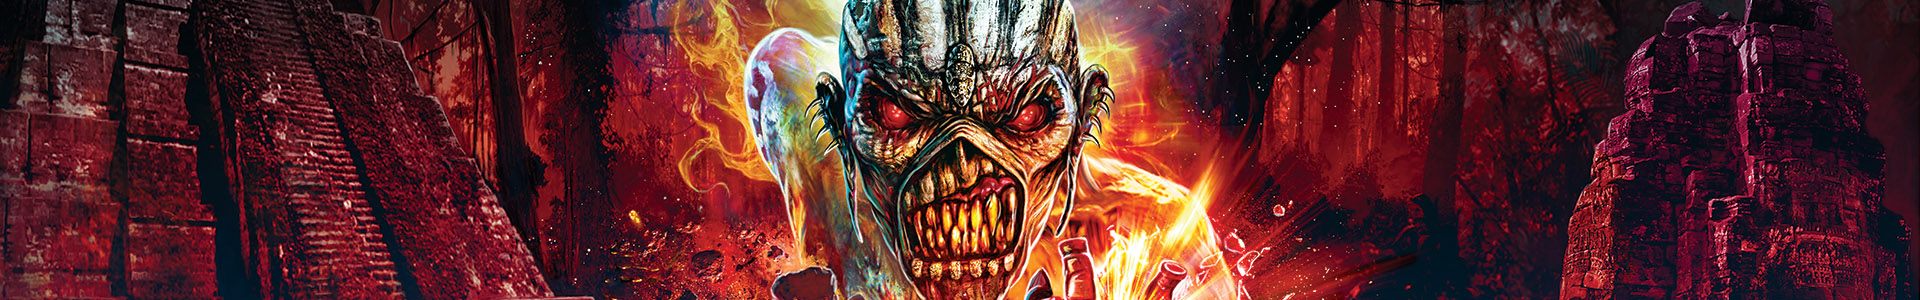 "IRON MAIDEN ""THE BOOK OF SOULS"" TOUR RETURNS TO NORTH AMERICA IN 2017!"